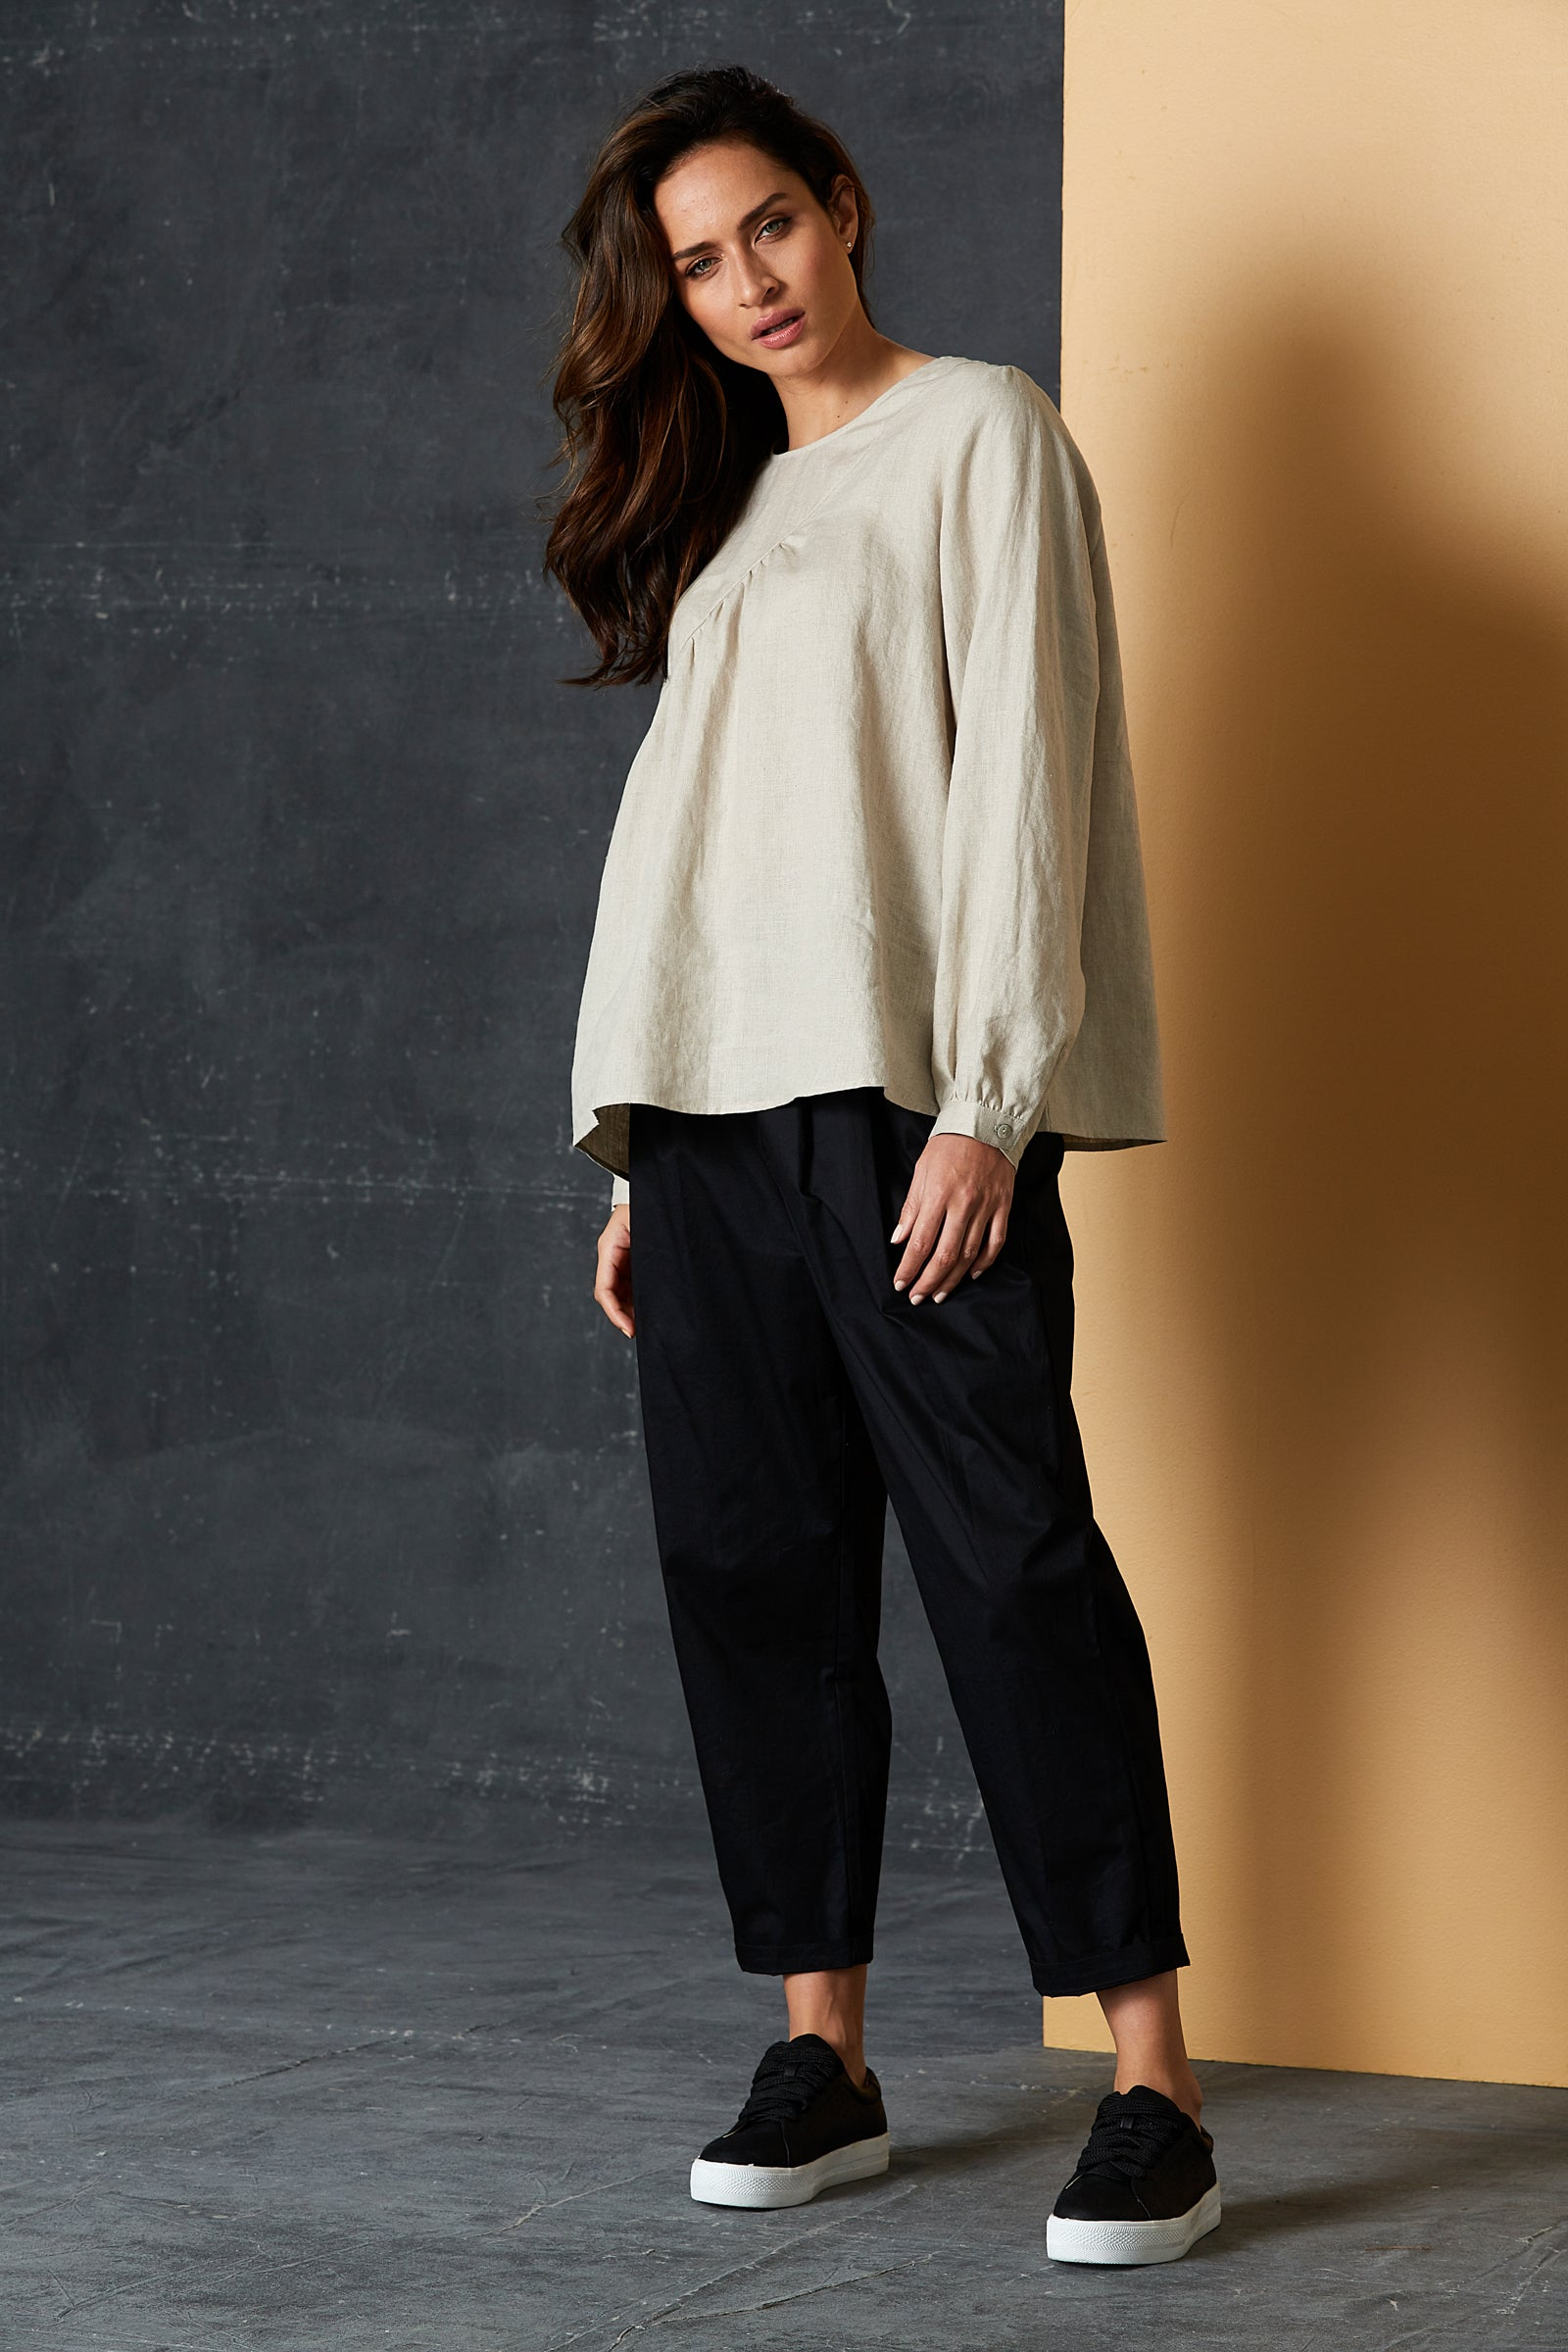 Bask Blouse - Flax - eb&ive Clothing - Top L/S Linen